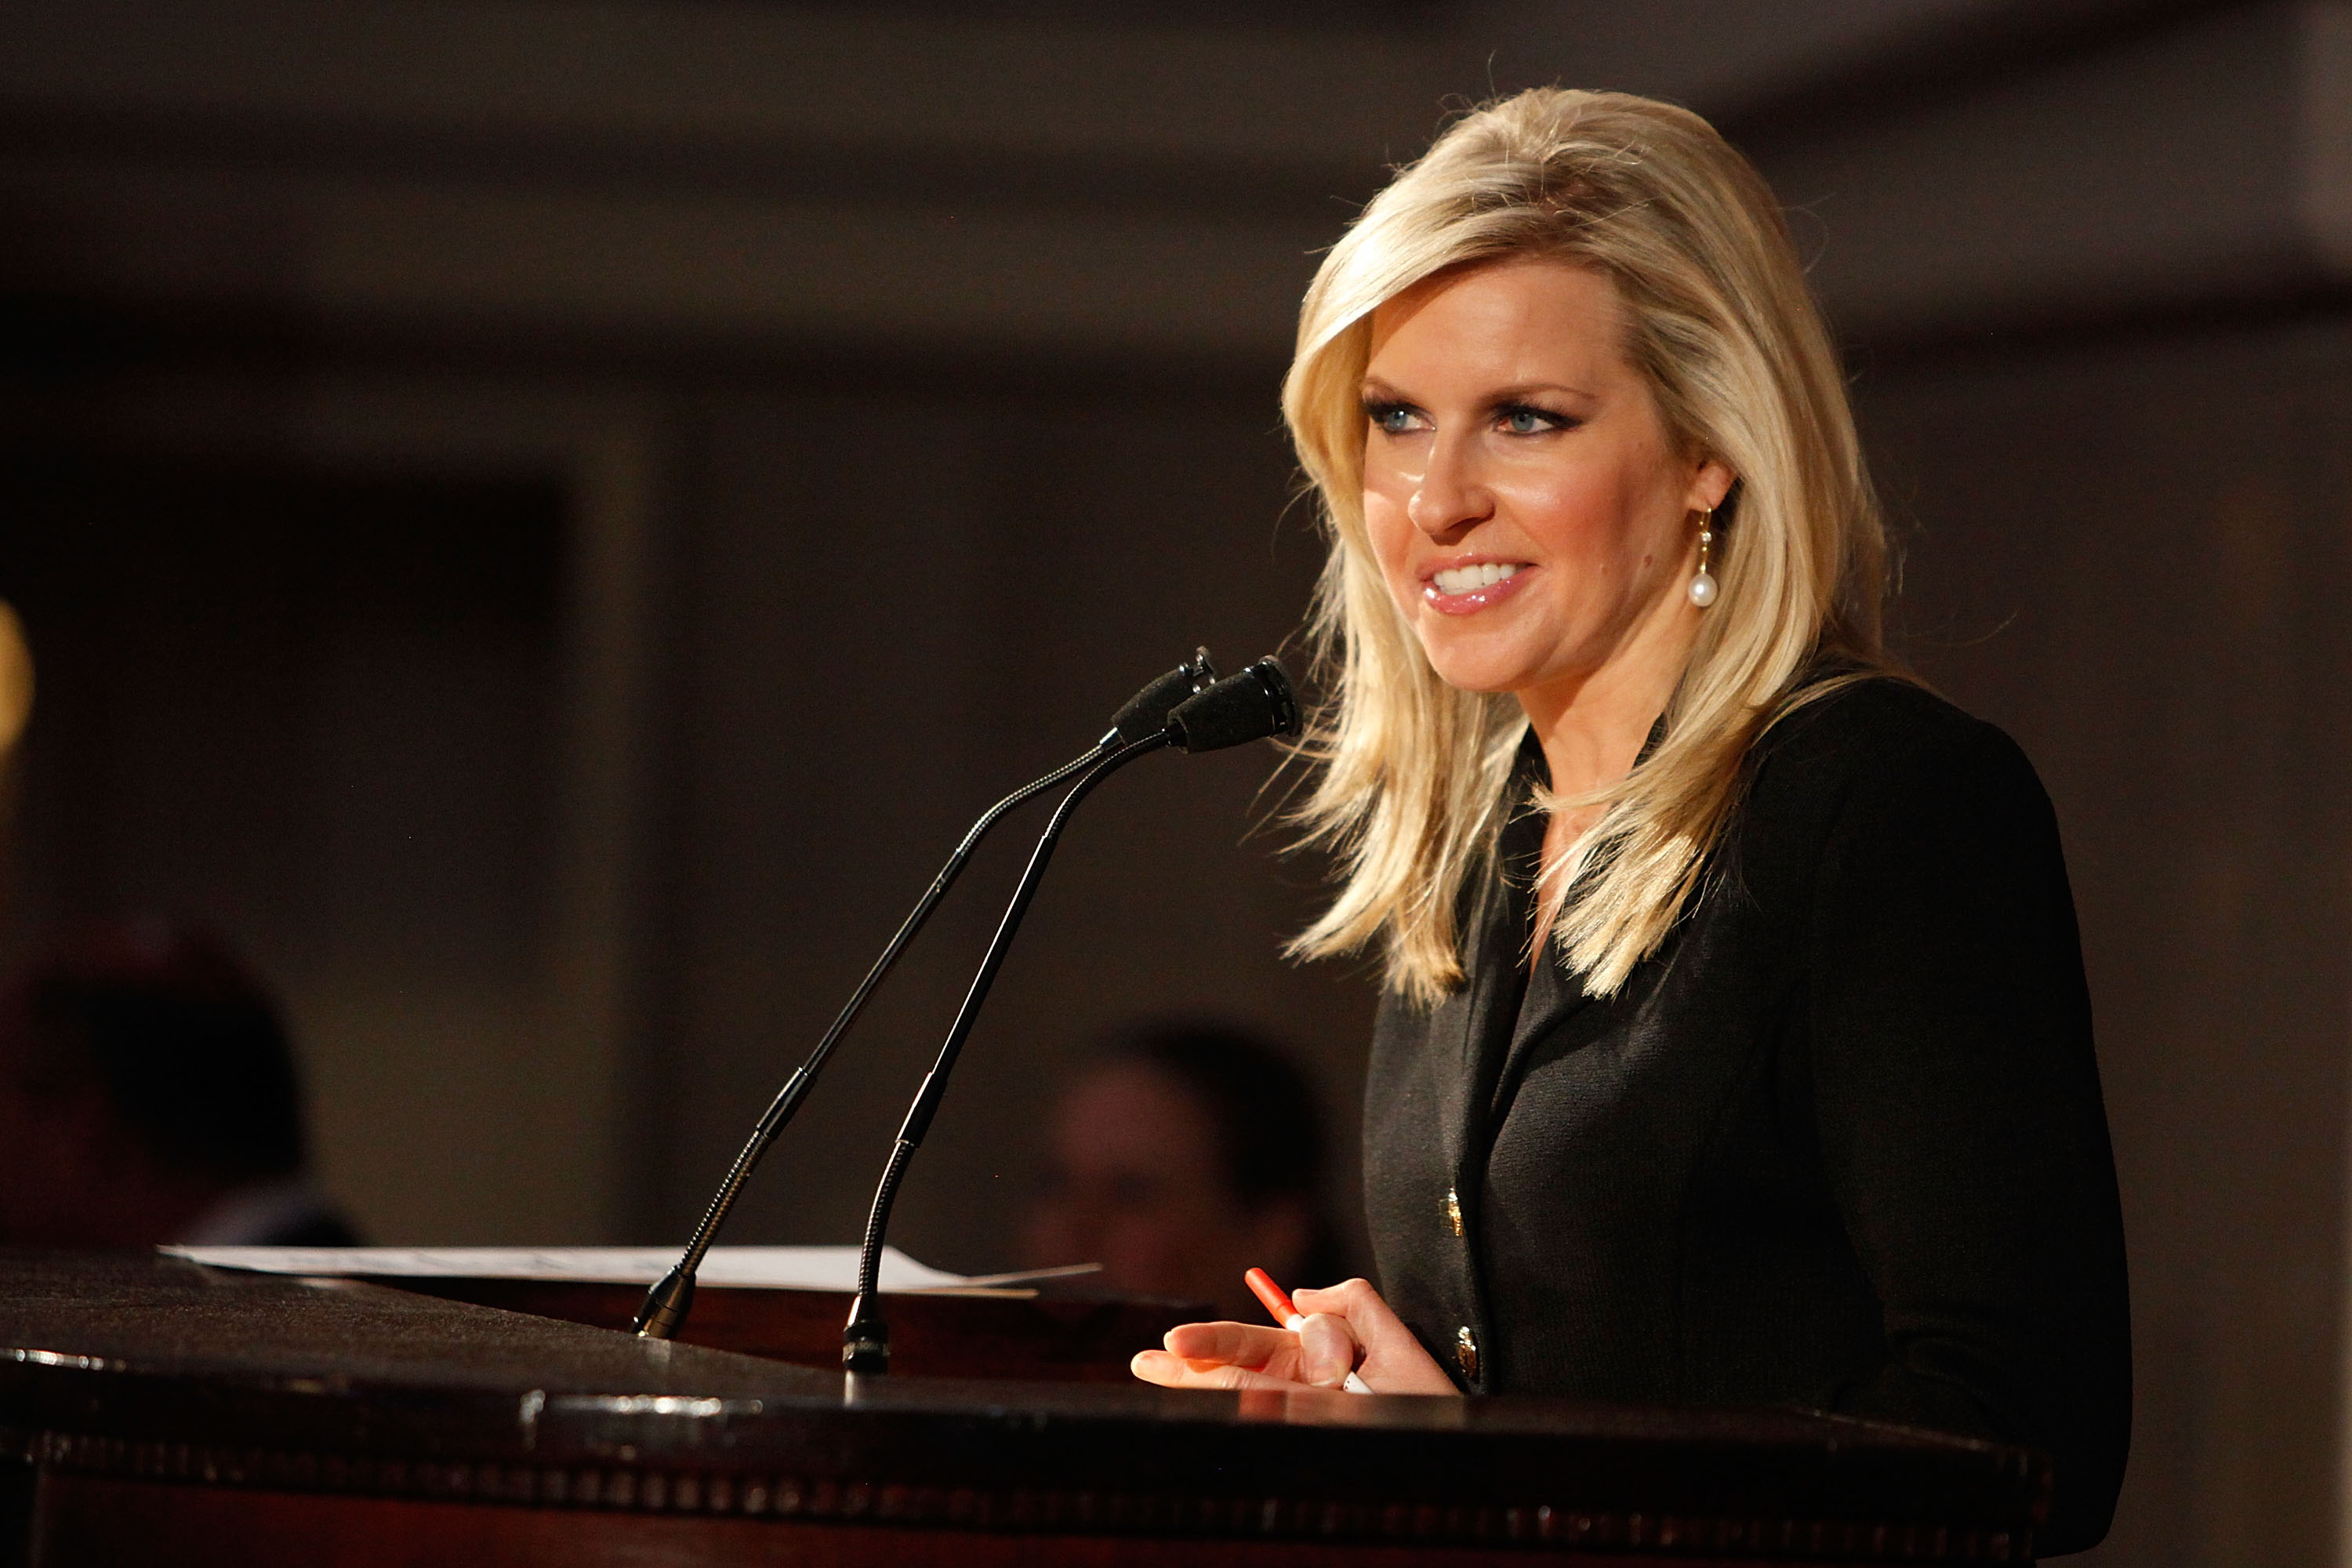 Monica Crowley attends the 2011 FIDF National New York Gala at The Waldorf-Astoria on March 22, 2011 in New York City.